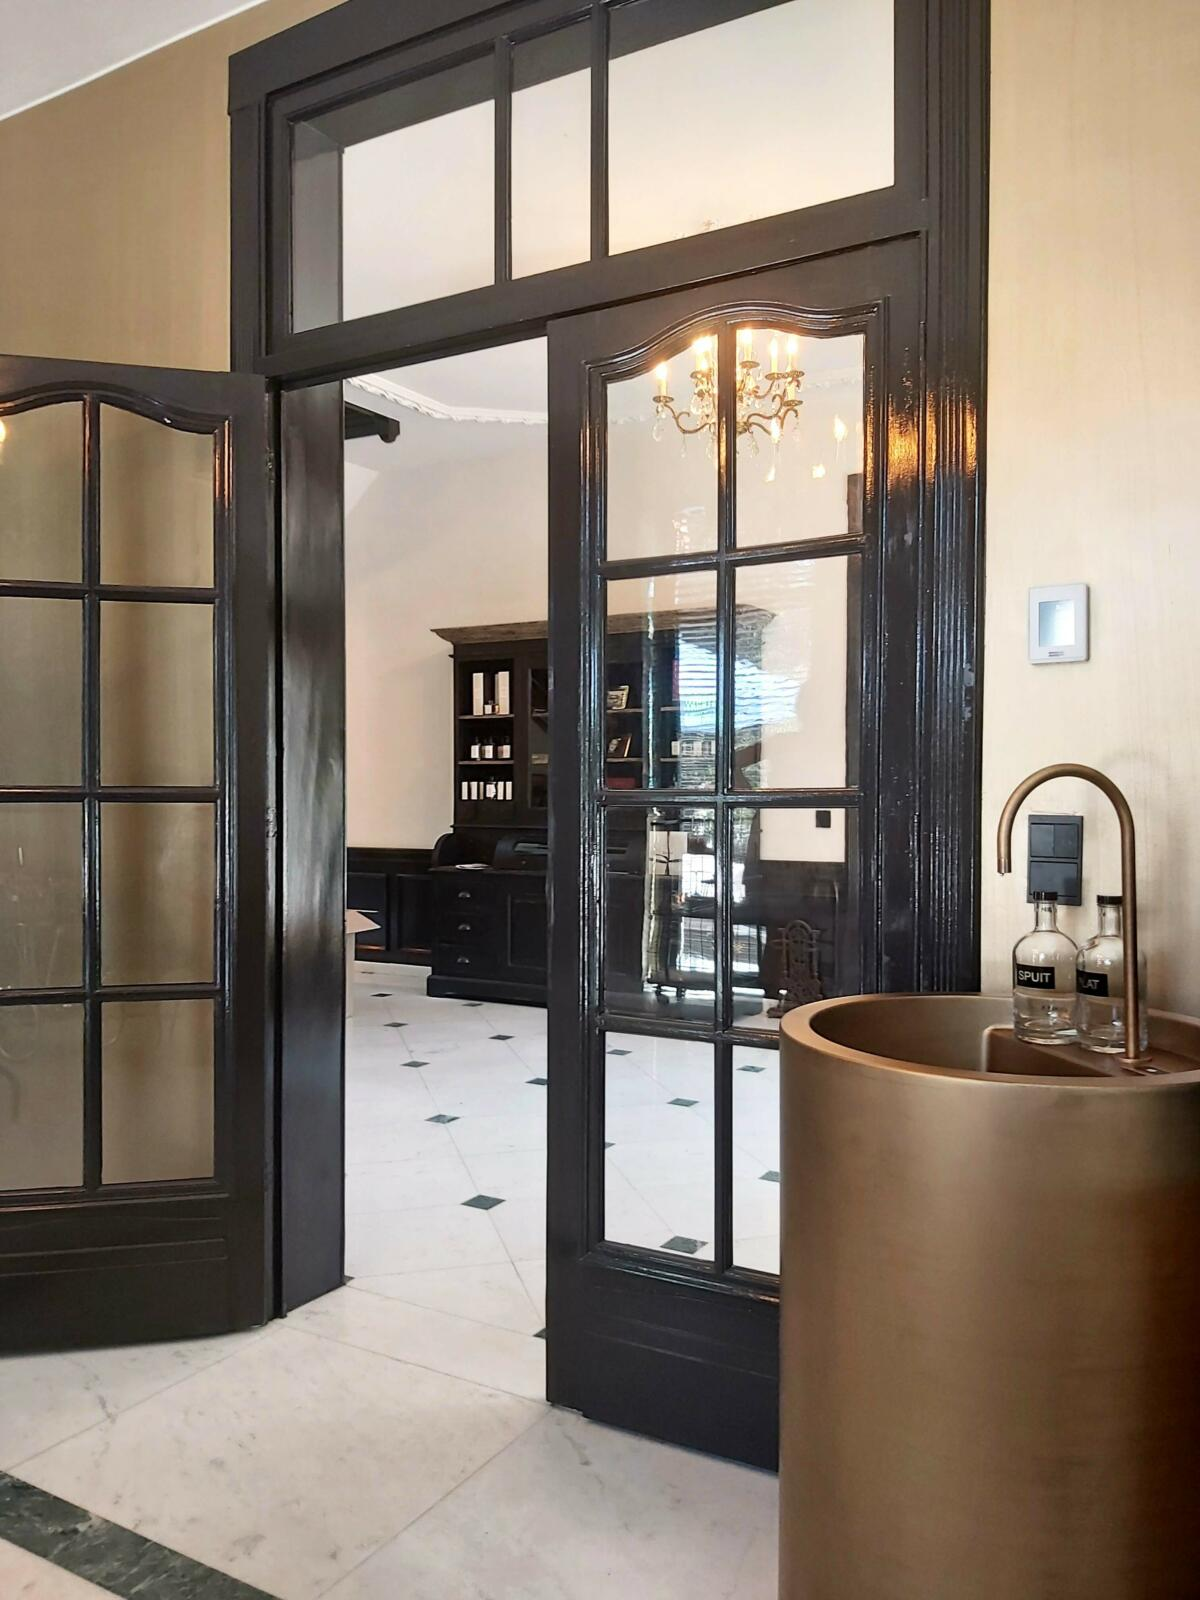 Boutique Hotel Fiertelmeers 2